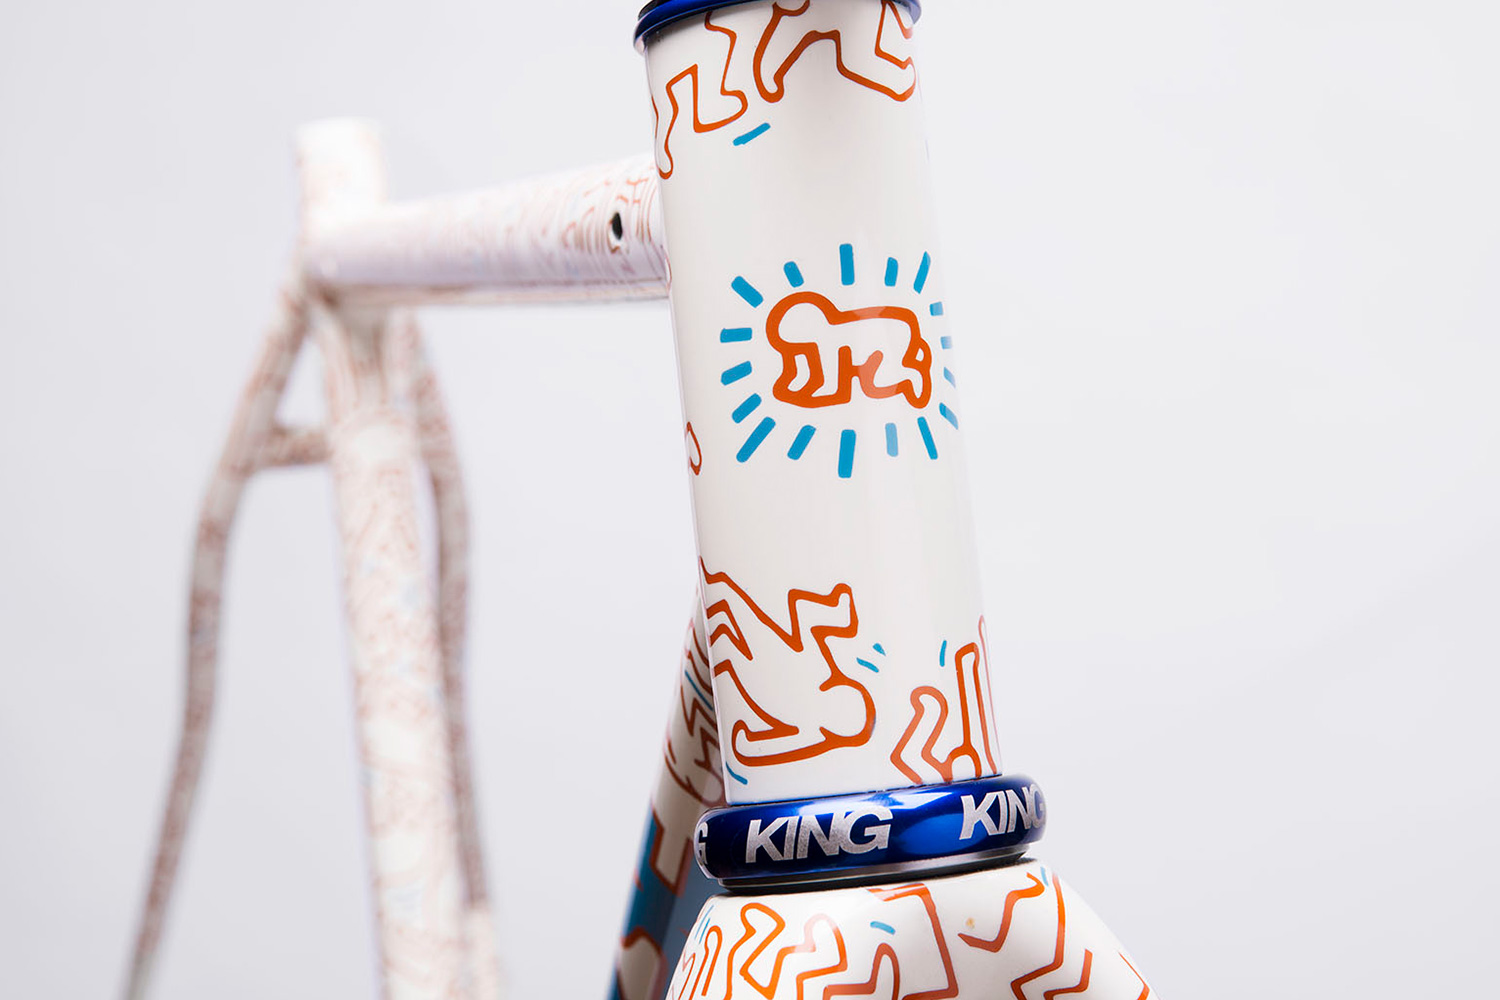 coarse-fabrication-keith-haring-cyclocross 2